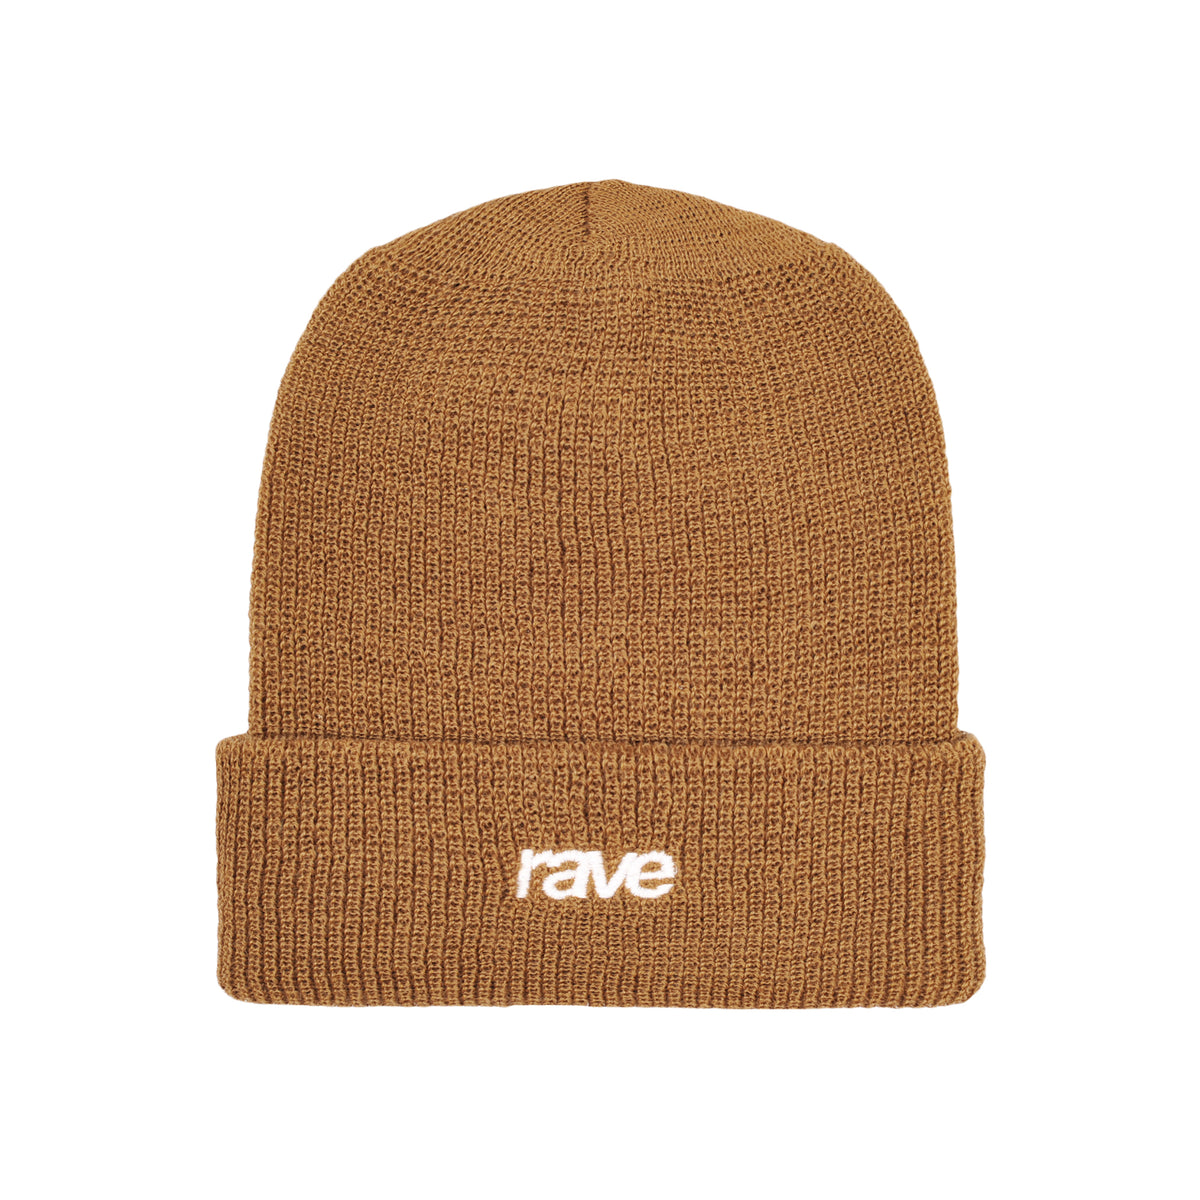 CLASSIC LOGO wool beanie light brown - RAVE skateboards